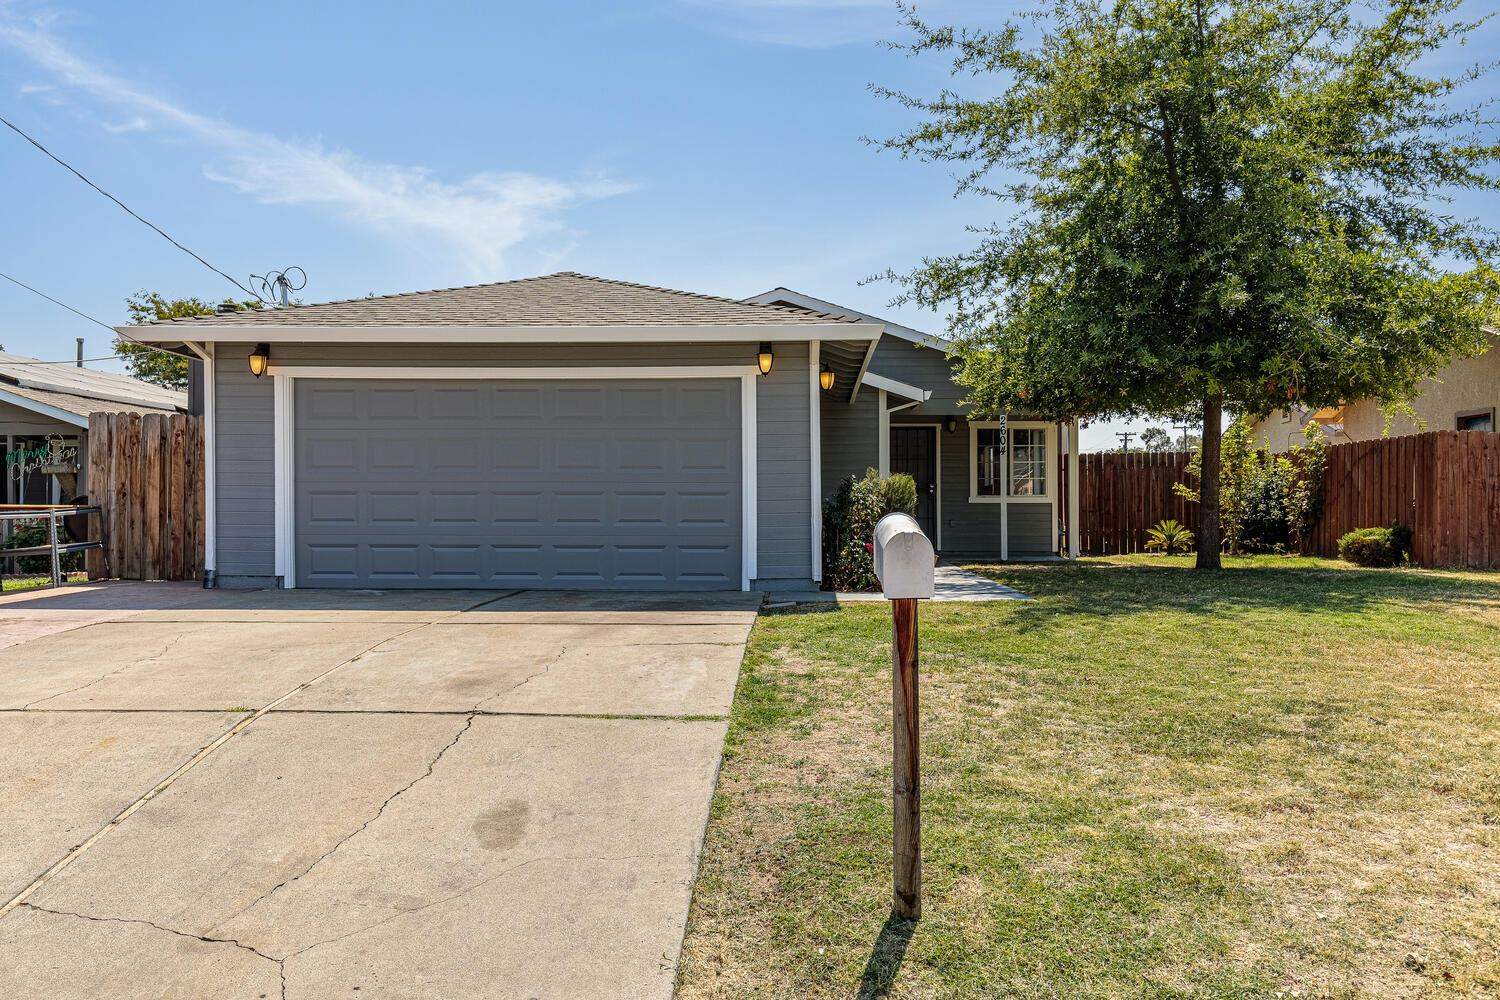 Welcome home to this Great find, 4Br, 2Ba, 1650sqft, 2GA, With a Solar System! Home was remodeled in 2013, it features vaulted ceiling in Living room, Granite counters in kitchen. New laminate floors, Freshly Painted in and out, stainless steel appliance, new microwave, tile bathrooms, good size rooms with ample closet space. Slider door off Master Bedroom. Large stamped cement patio, with a covered patio, Tool shed & Room for having and room for RV access. Newer composition roof, and newer water heater. Garage features large utility sink, large counter with cabinets. Home is situated in one of the very desirable streets in the neighborhood with new homes being built in the immediate area. Close to schools and shopping!